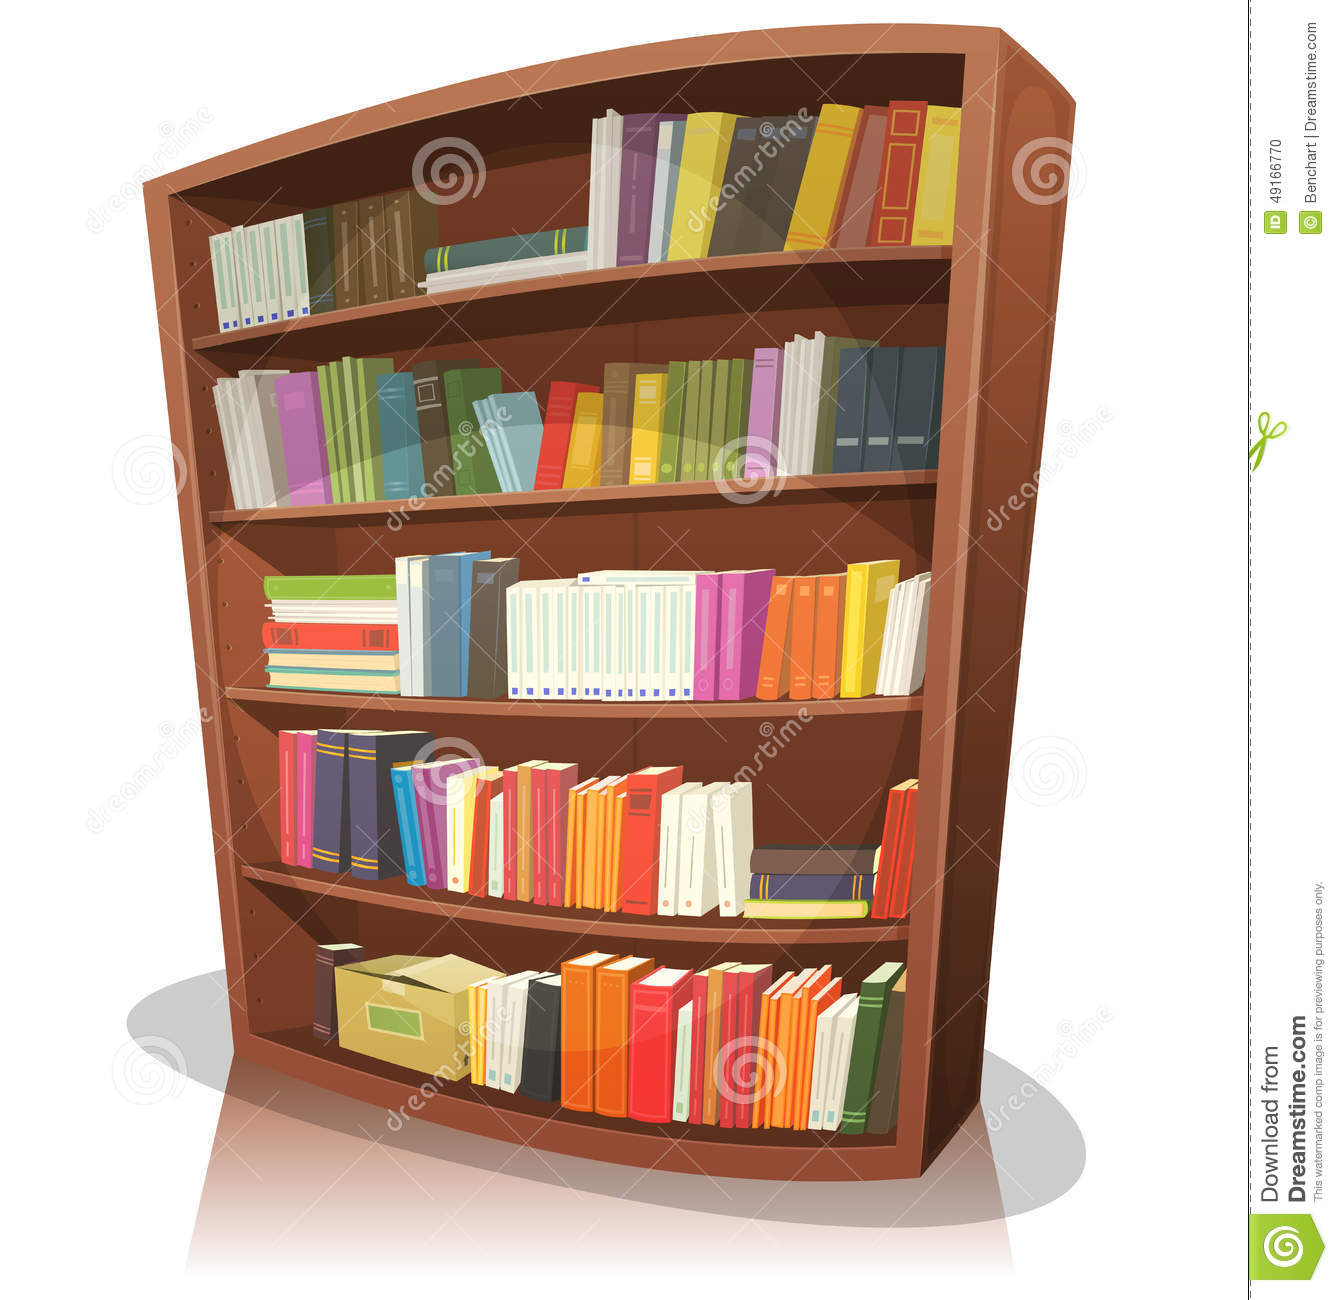 ... cartoon home, school or library store wooden bookshelf, full of books